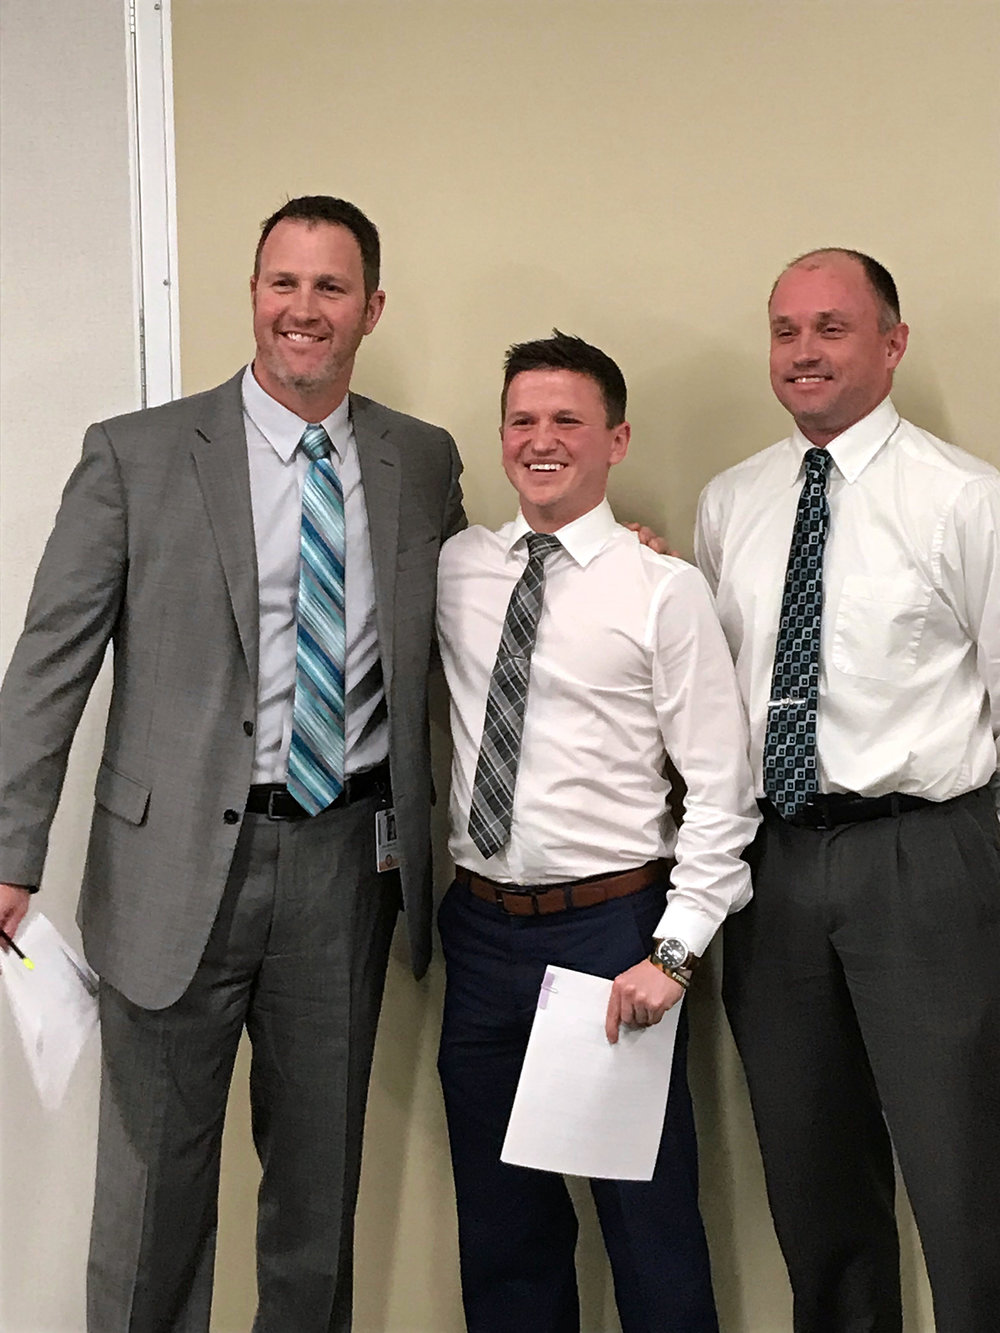 BRYCE MERENESS/Citizen Staff Pathfinder Elementry physical education teacher Joe Masciovecchio, center, was honored as the March SCHIVIR Me Timbers recipient. Joining him is Pathfinder principal Dr. Devin Doll (left) and Andy Hall, director of information services.